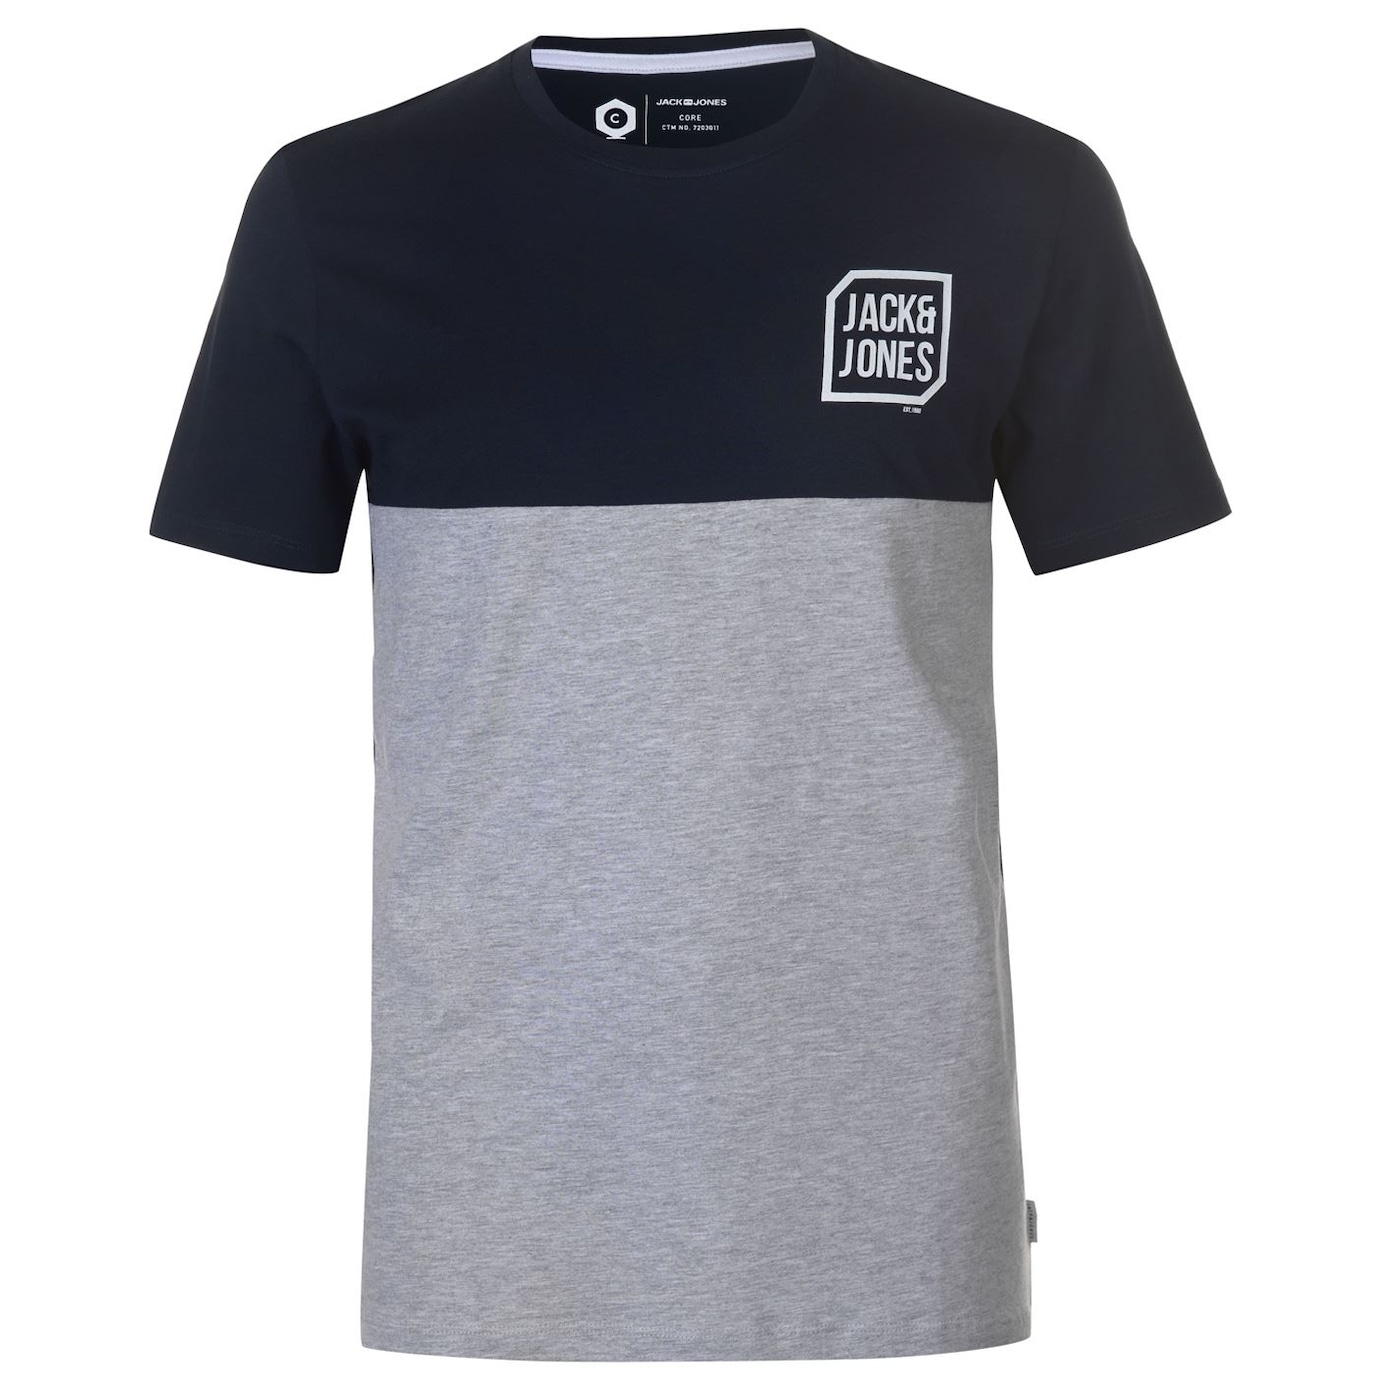 Triko Jack and Jones Core Tern T Shirt pánské